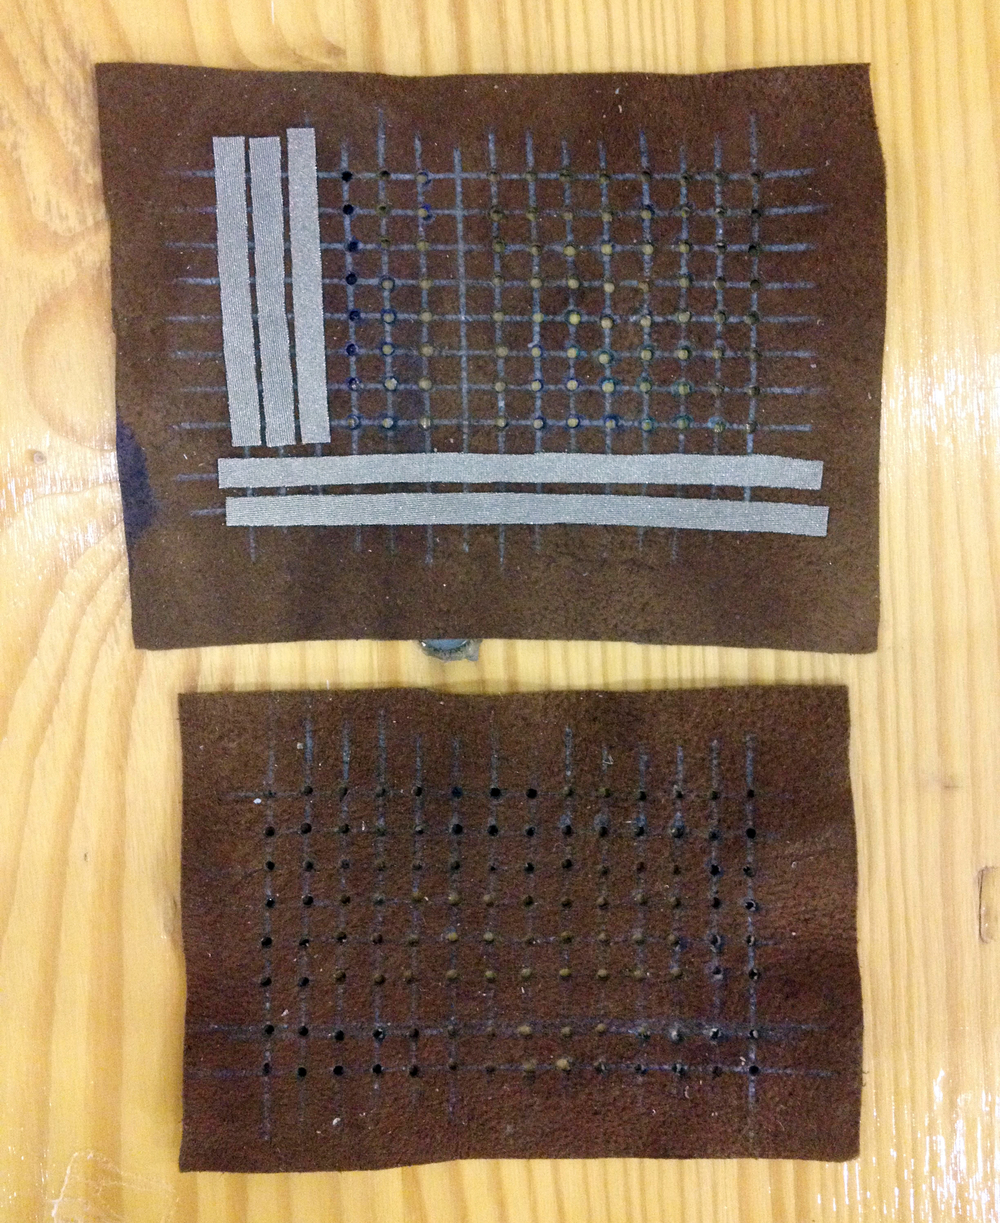 underneath the eTextile breadboard. strips of eeonyx conductive lycra are bonded to hole-punched leather